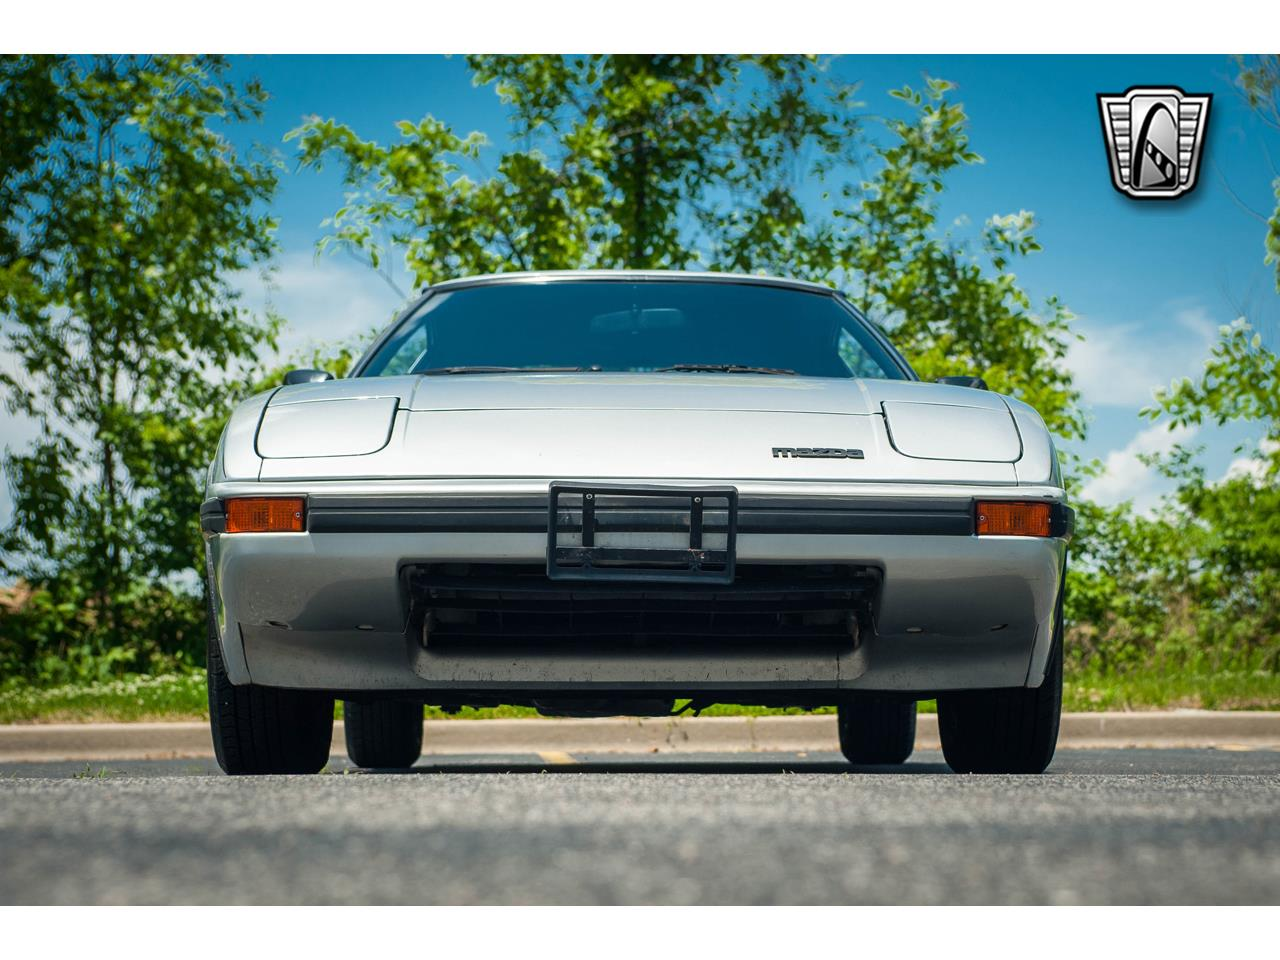 Large Picture of 1982 Mazda RX-7 located in Illinois - $14,500.00 - QB9V